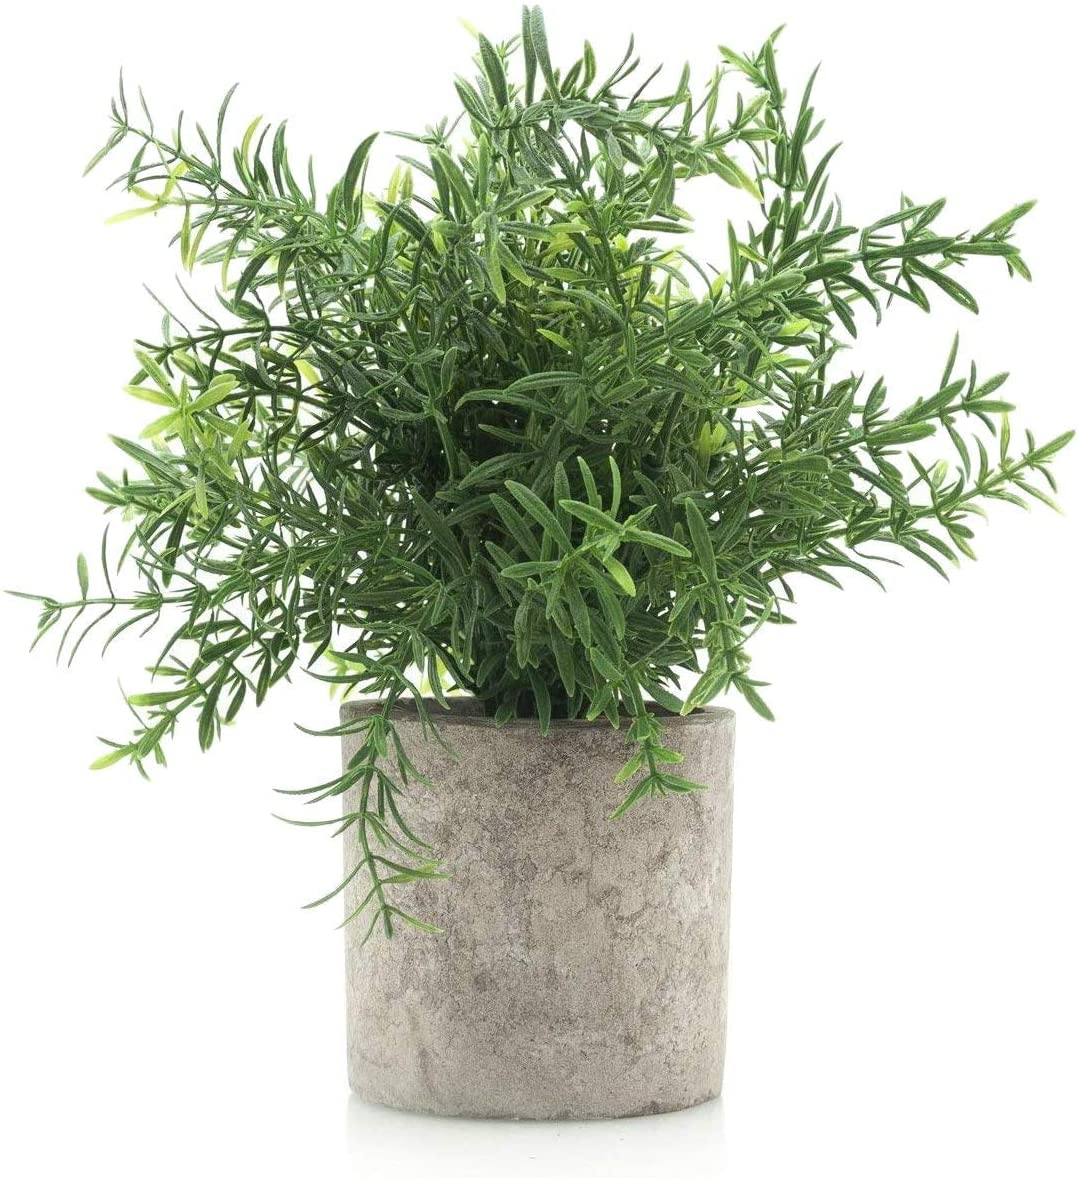 Velener Mini Potted Plastic Fake Green Plant for Home Decor (Bamboo Leaves) -